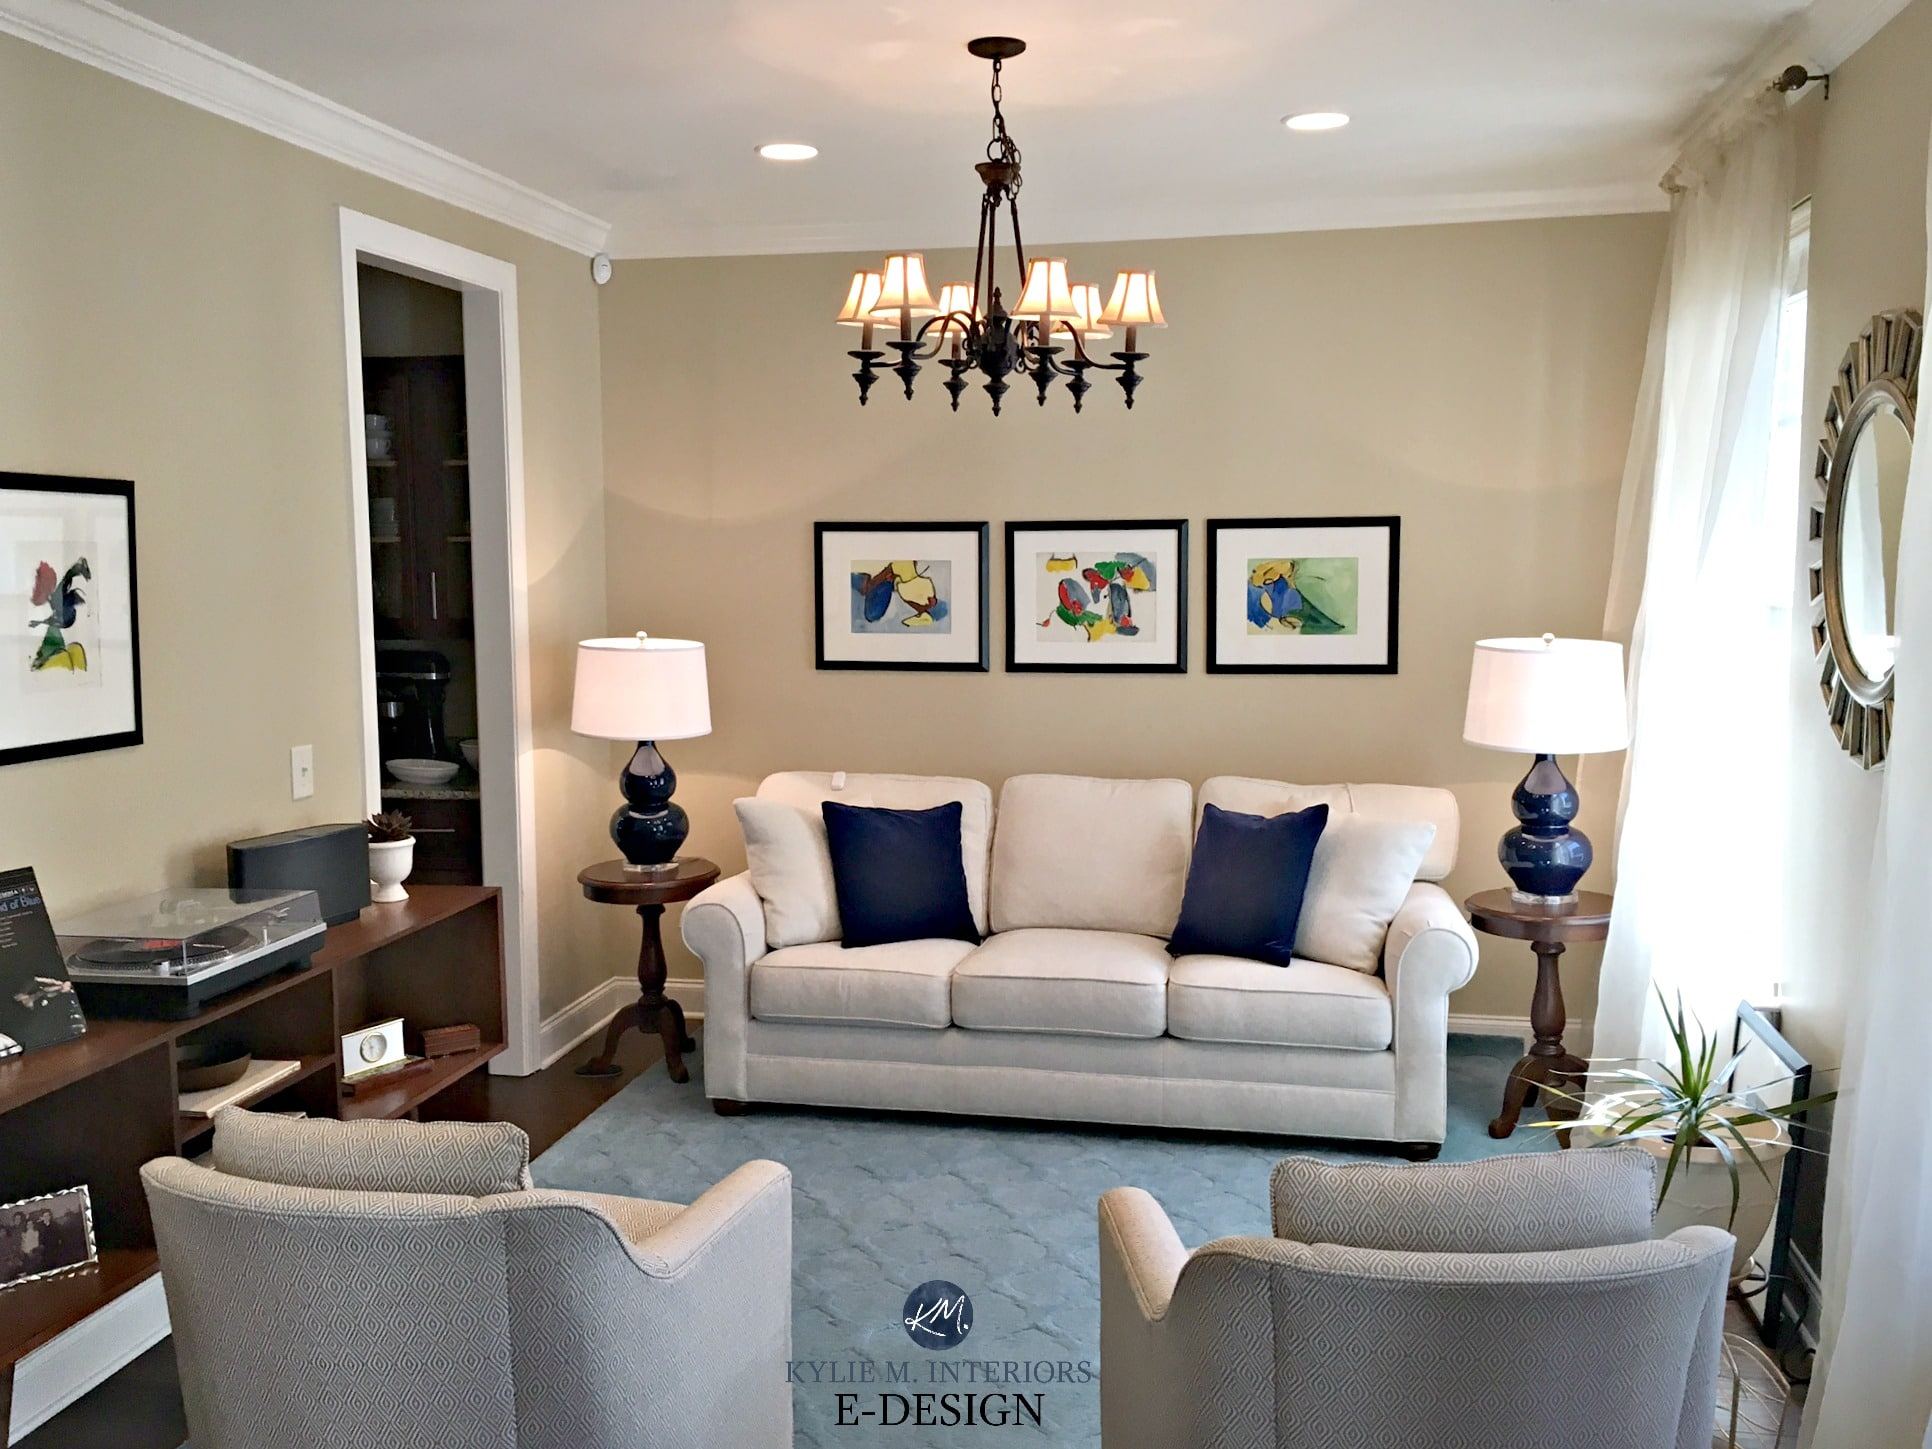 Home staging in living room with balance, navy blue accents ...